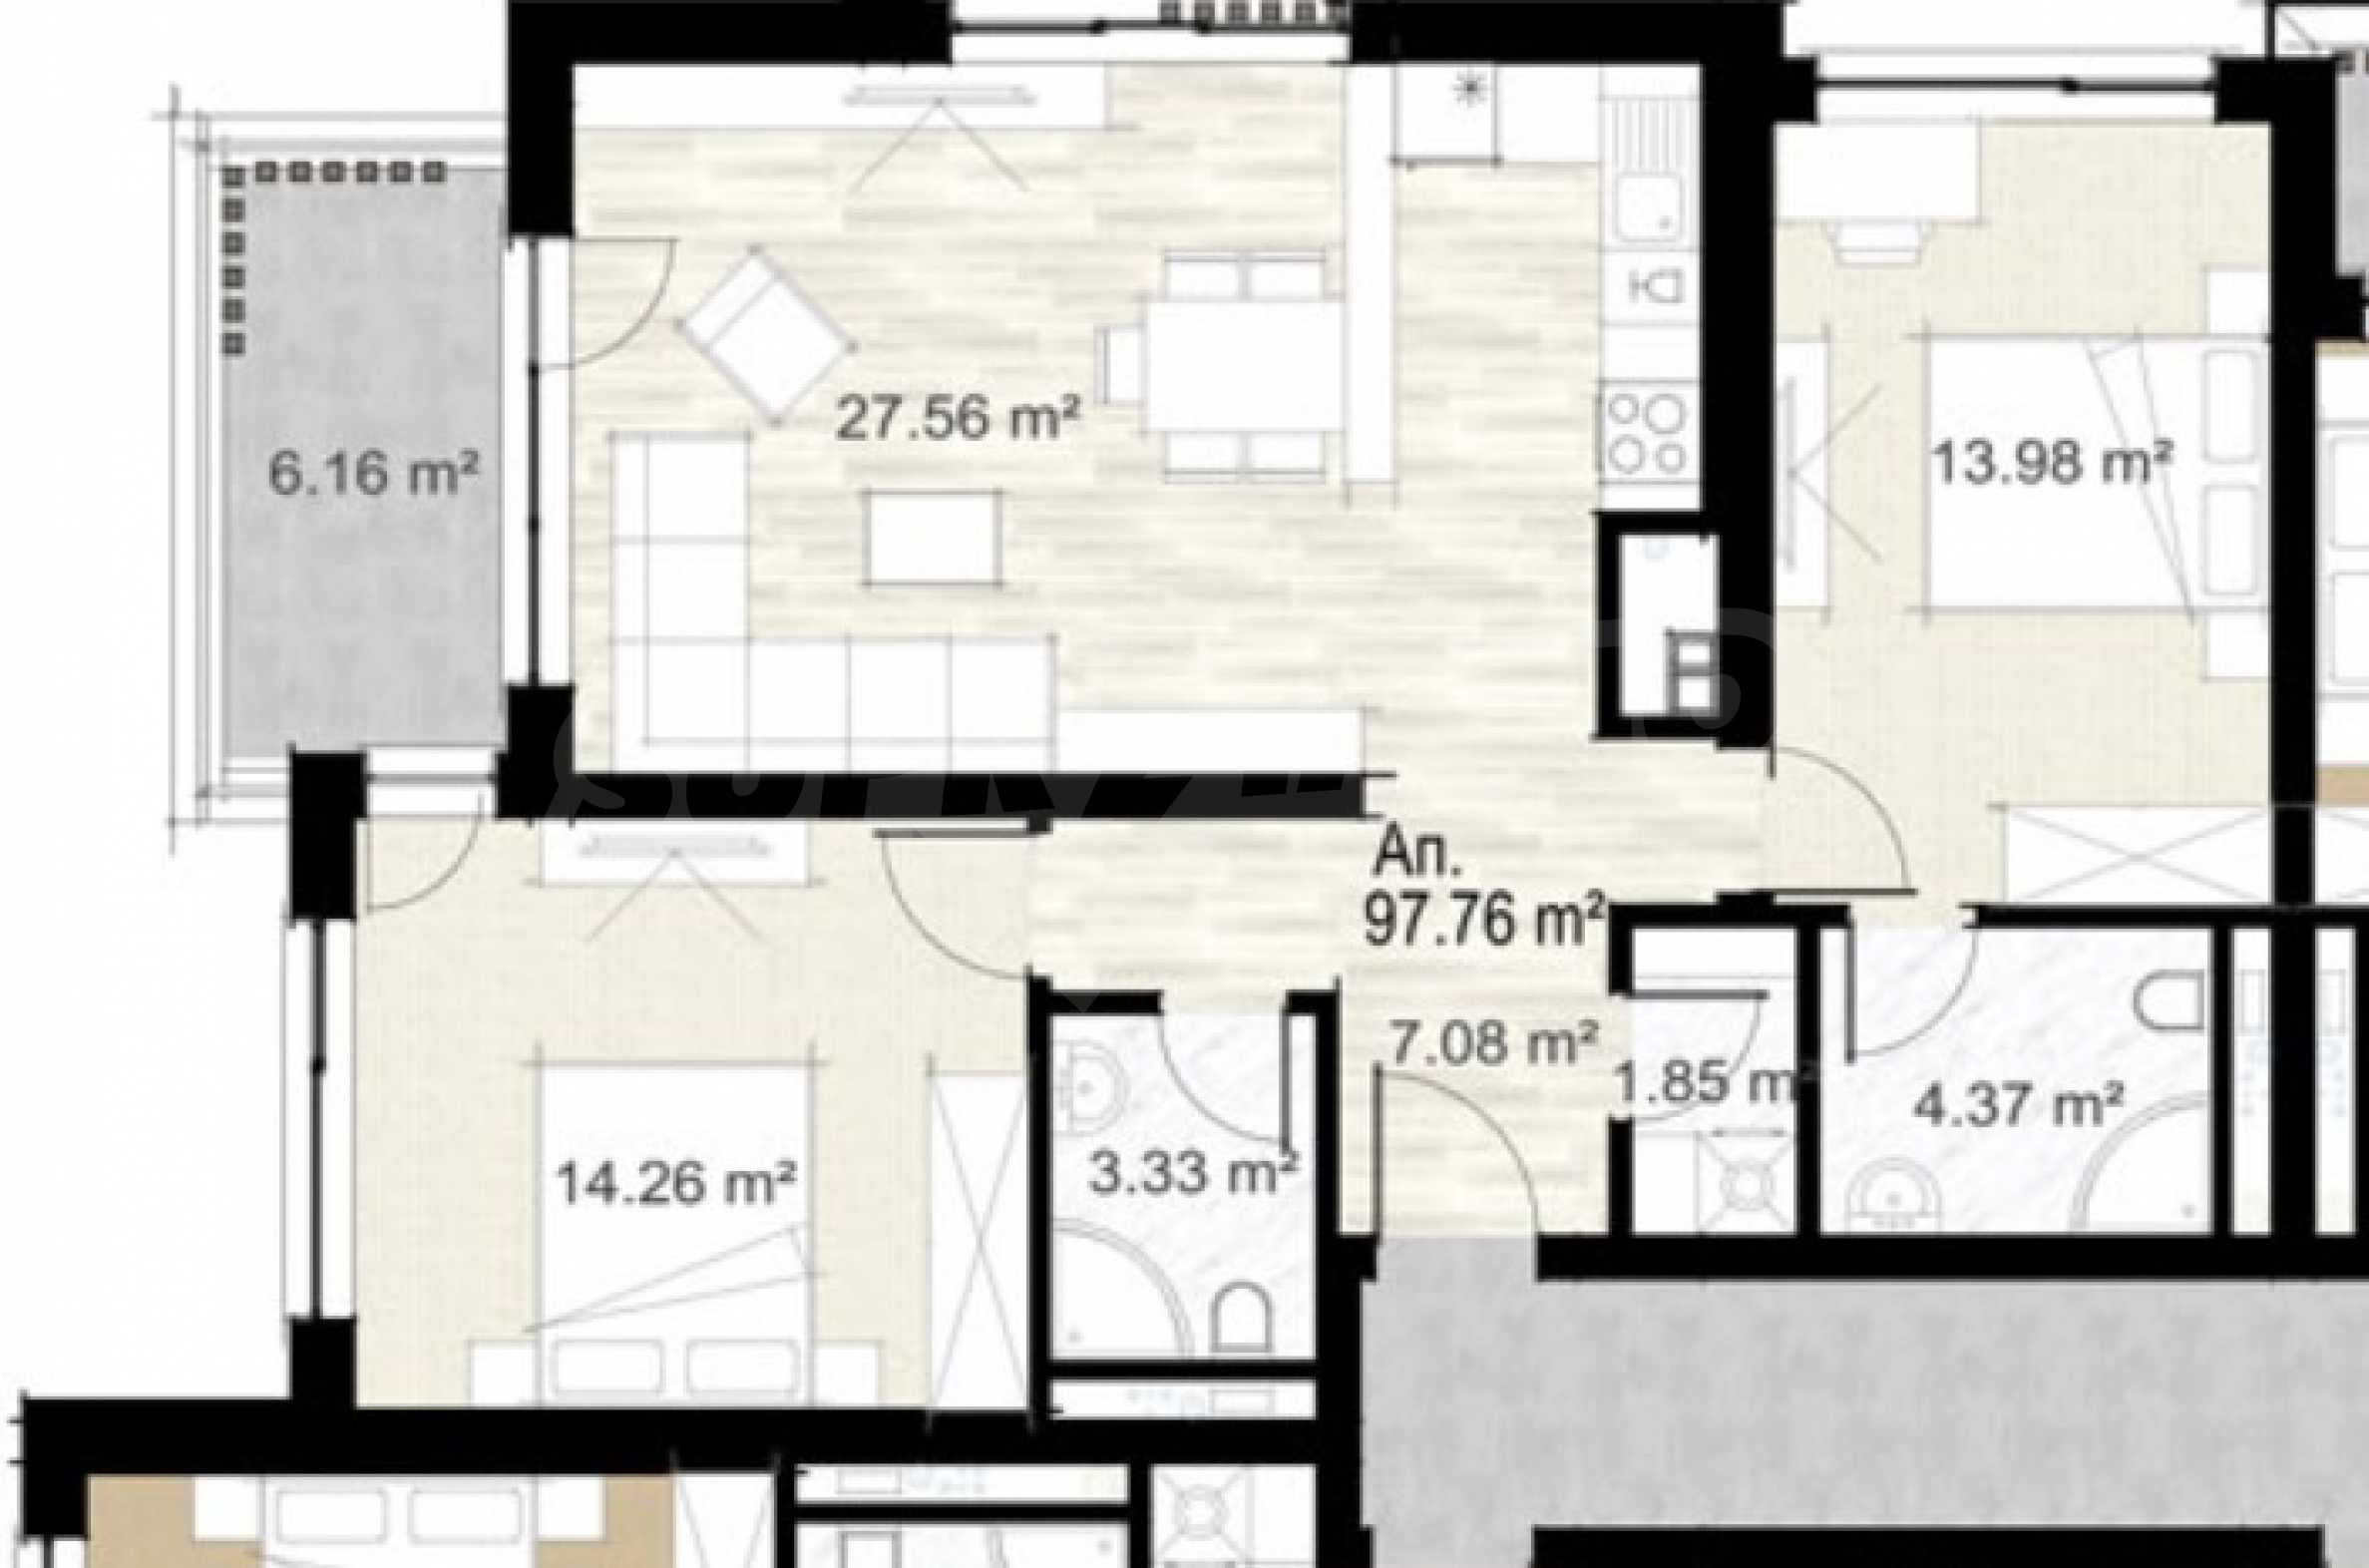 Two bedroom apartment in a new building next to the park, Mall Sofia and metro station 1